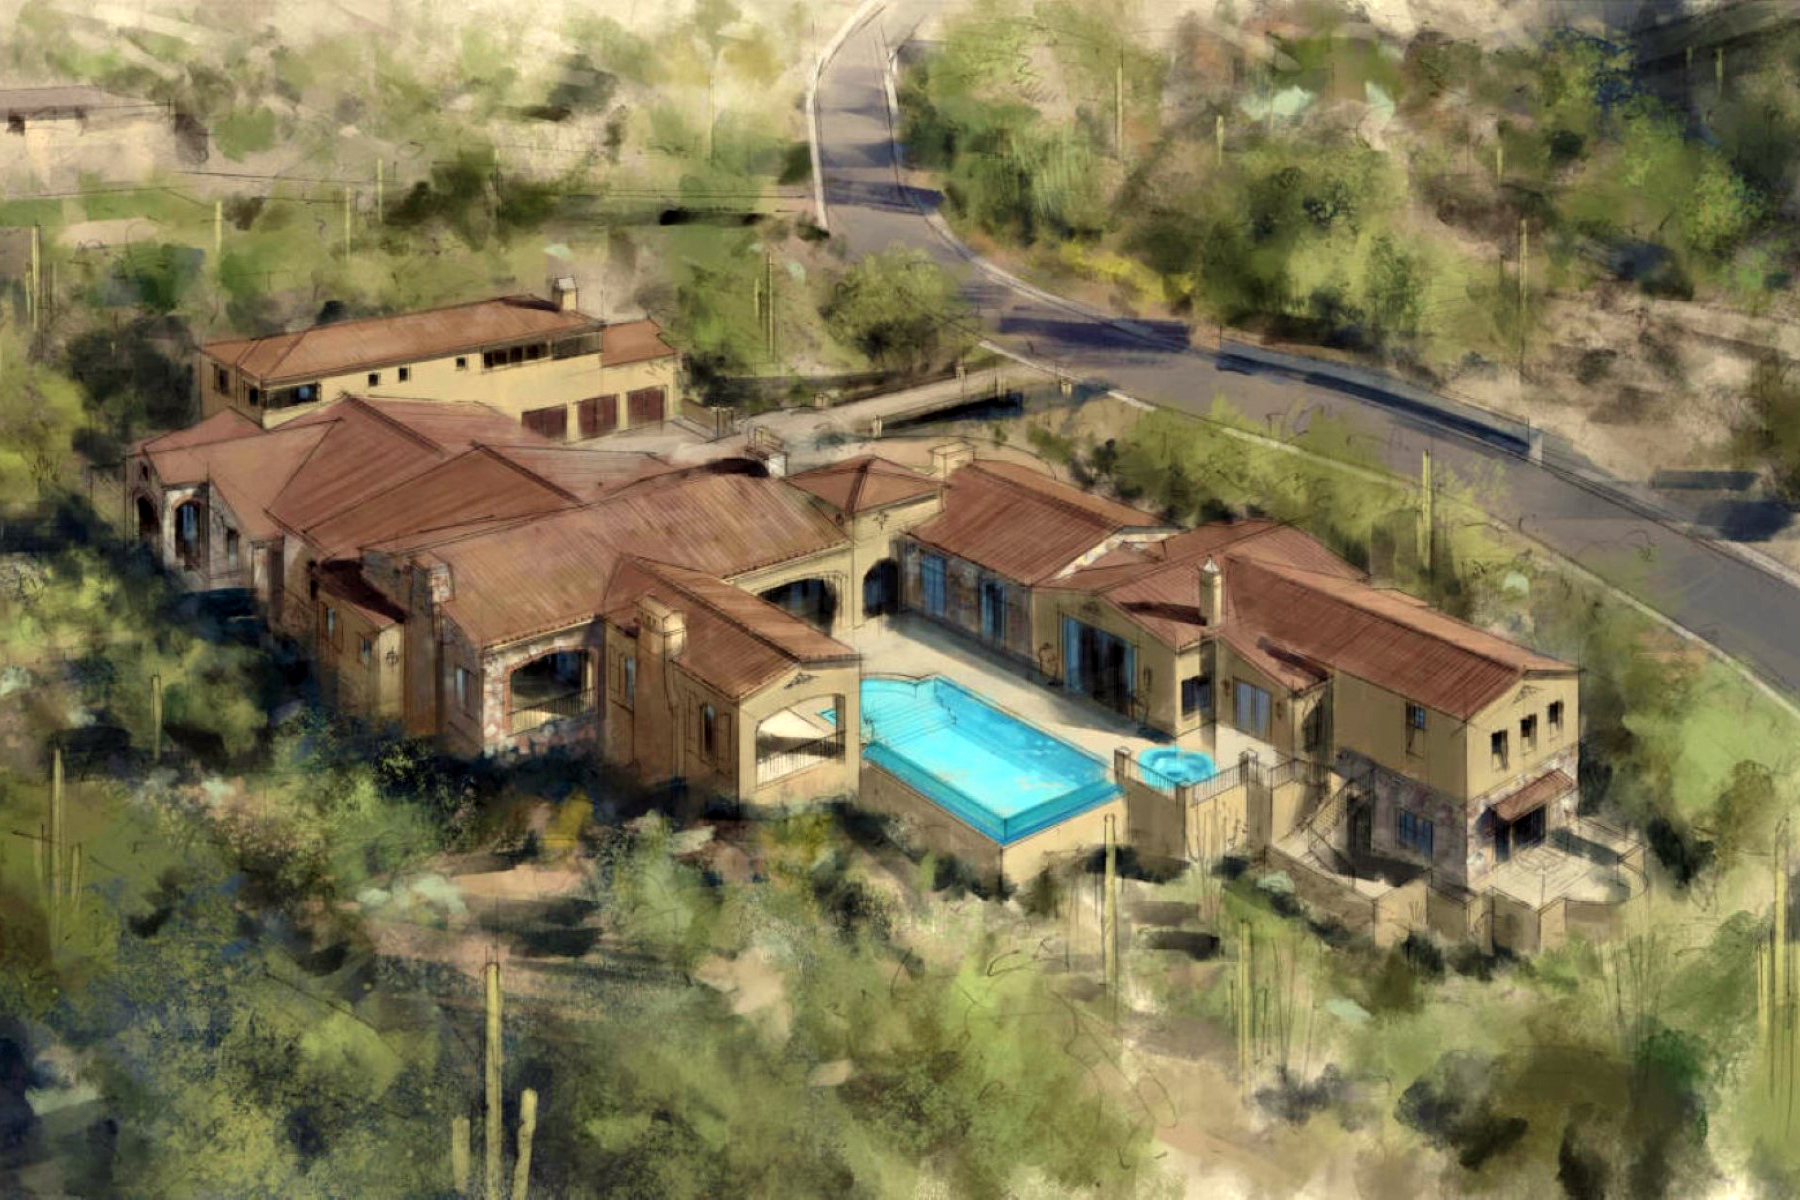 独户住宅 为 销售 在 Stunning Silverleaf Luxury New Build With Valley Views 11004 E Feathersong Lane Scottsdale, 亚利桑那州 85255 美国